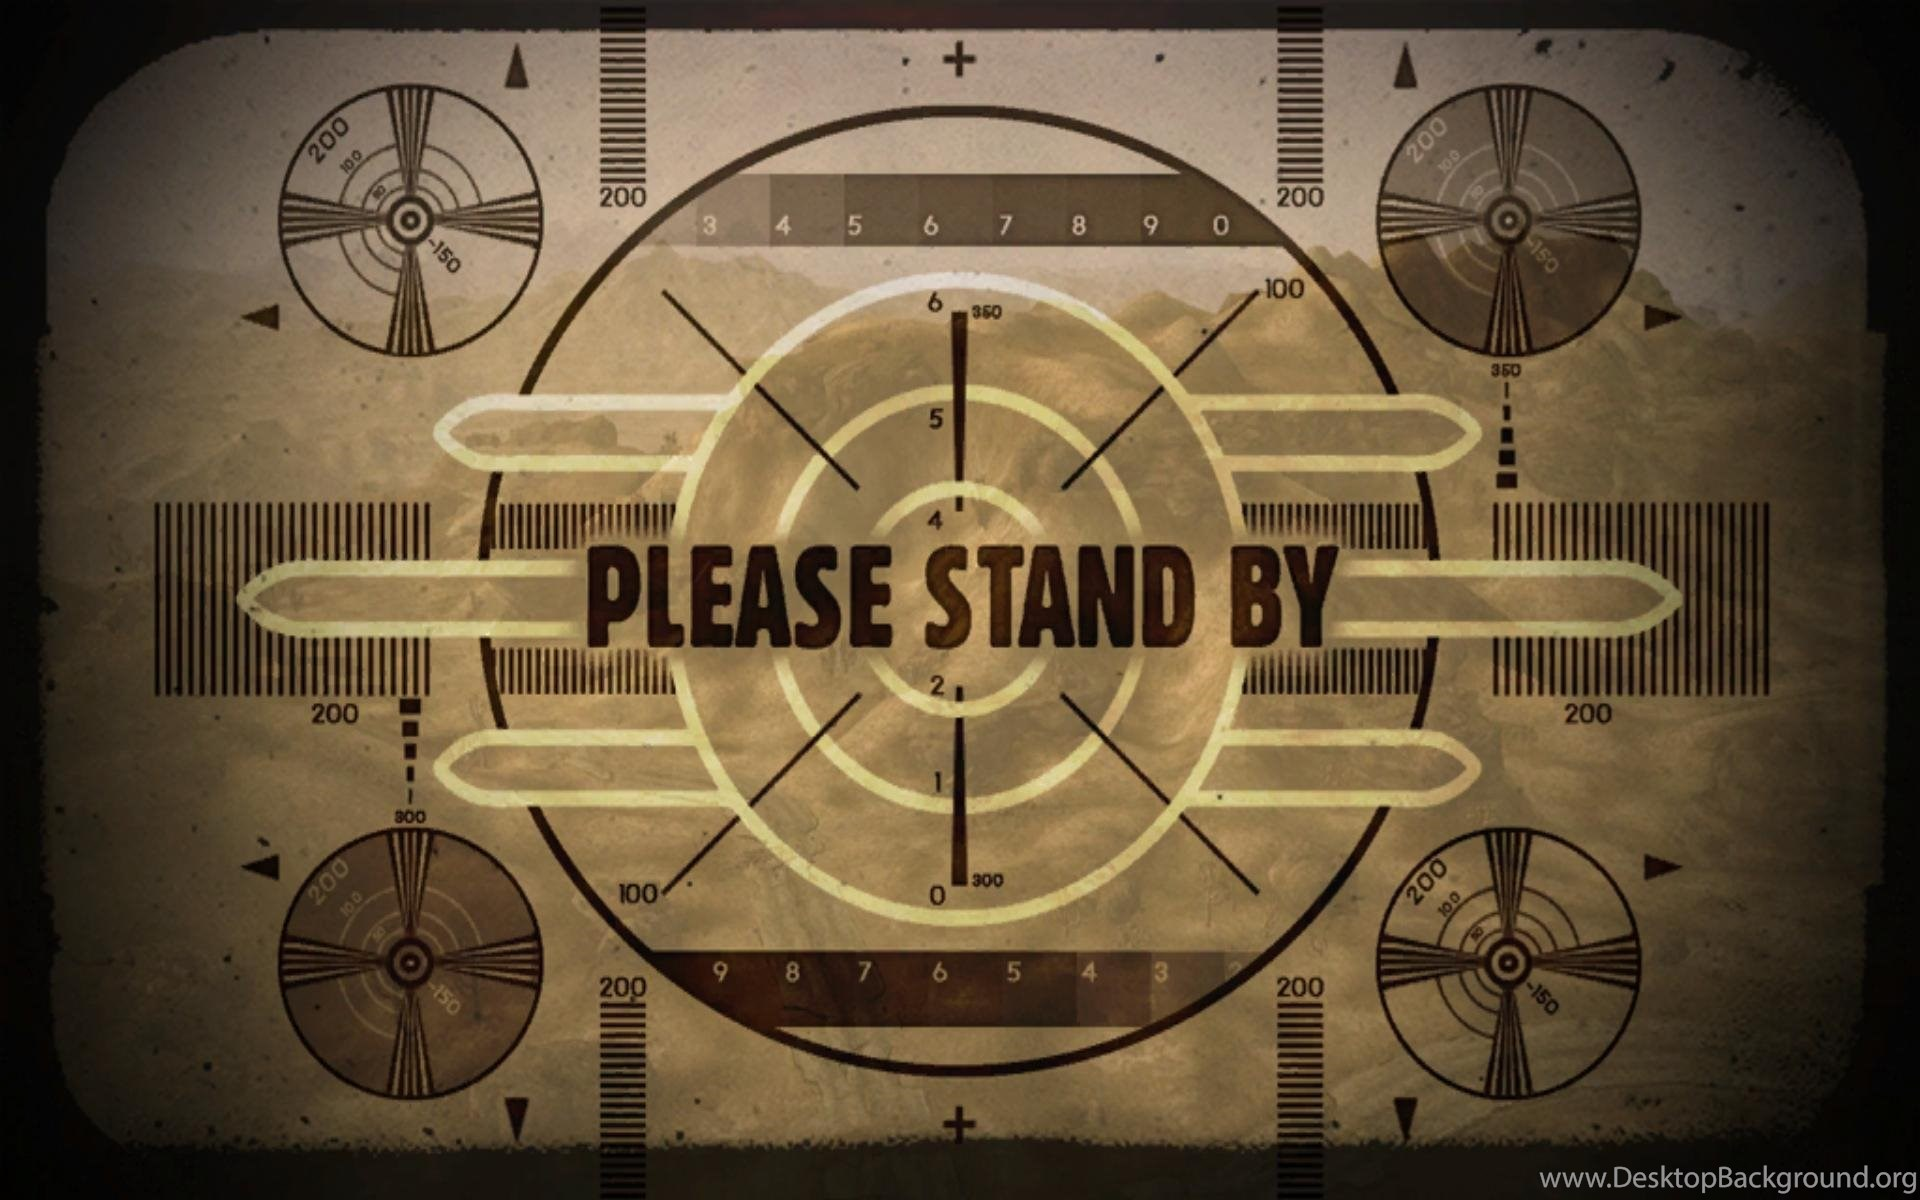 Fallout Wallpapers Please Stand By Wallpapers Desktop Kemecer Com